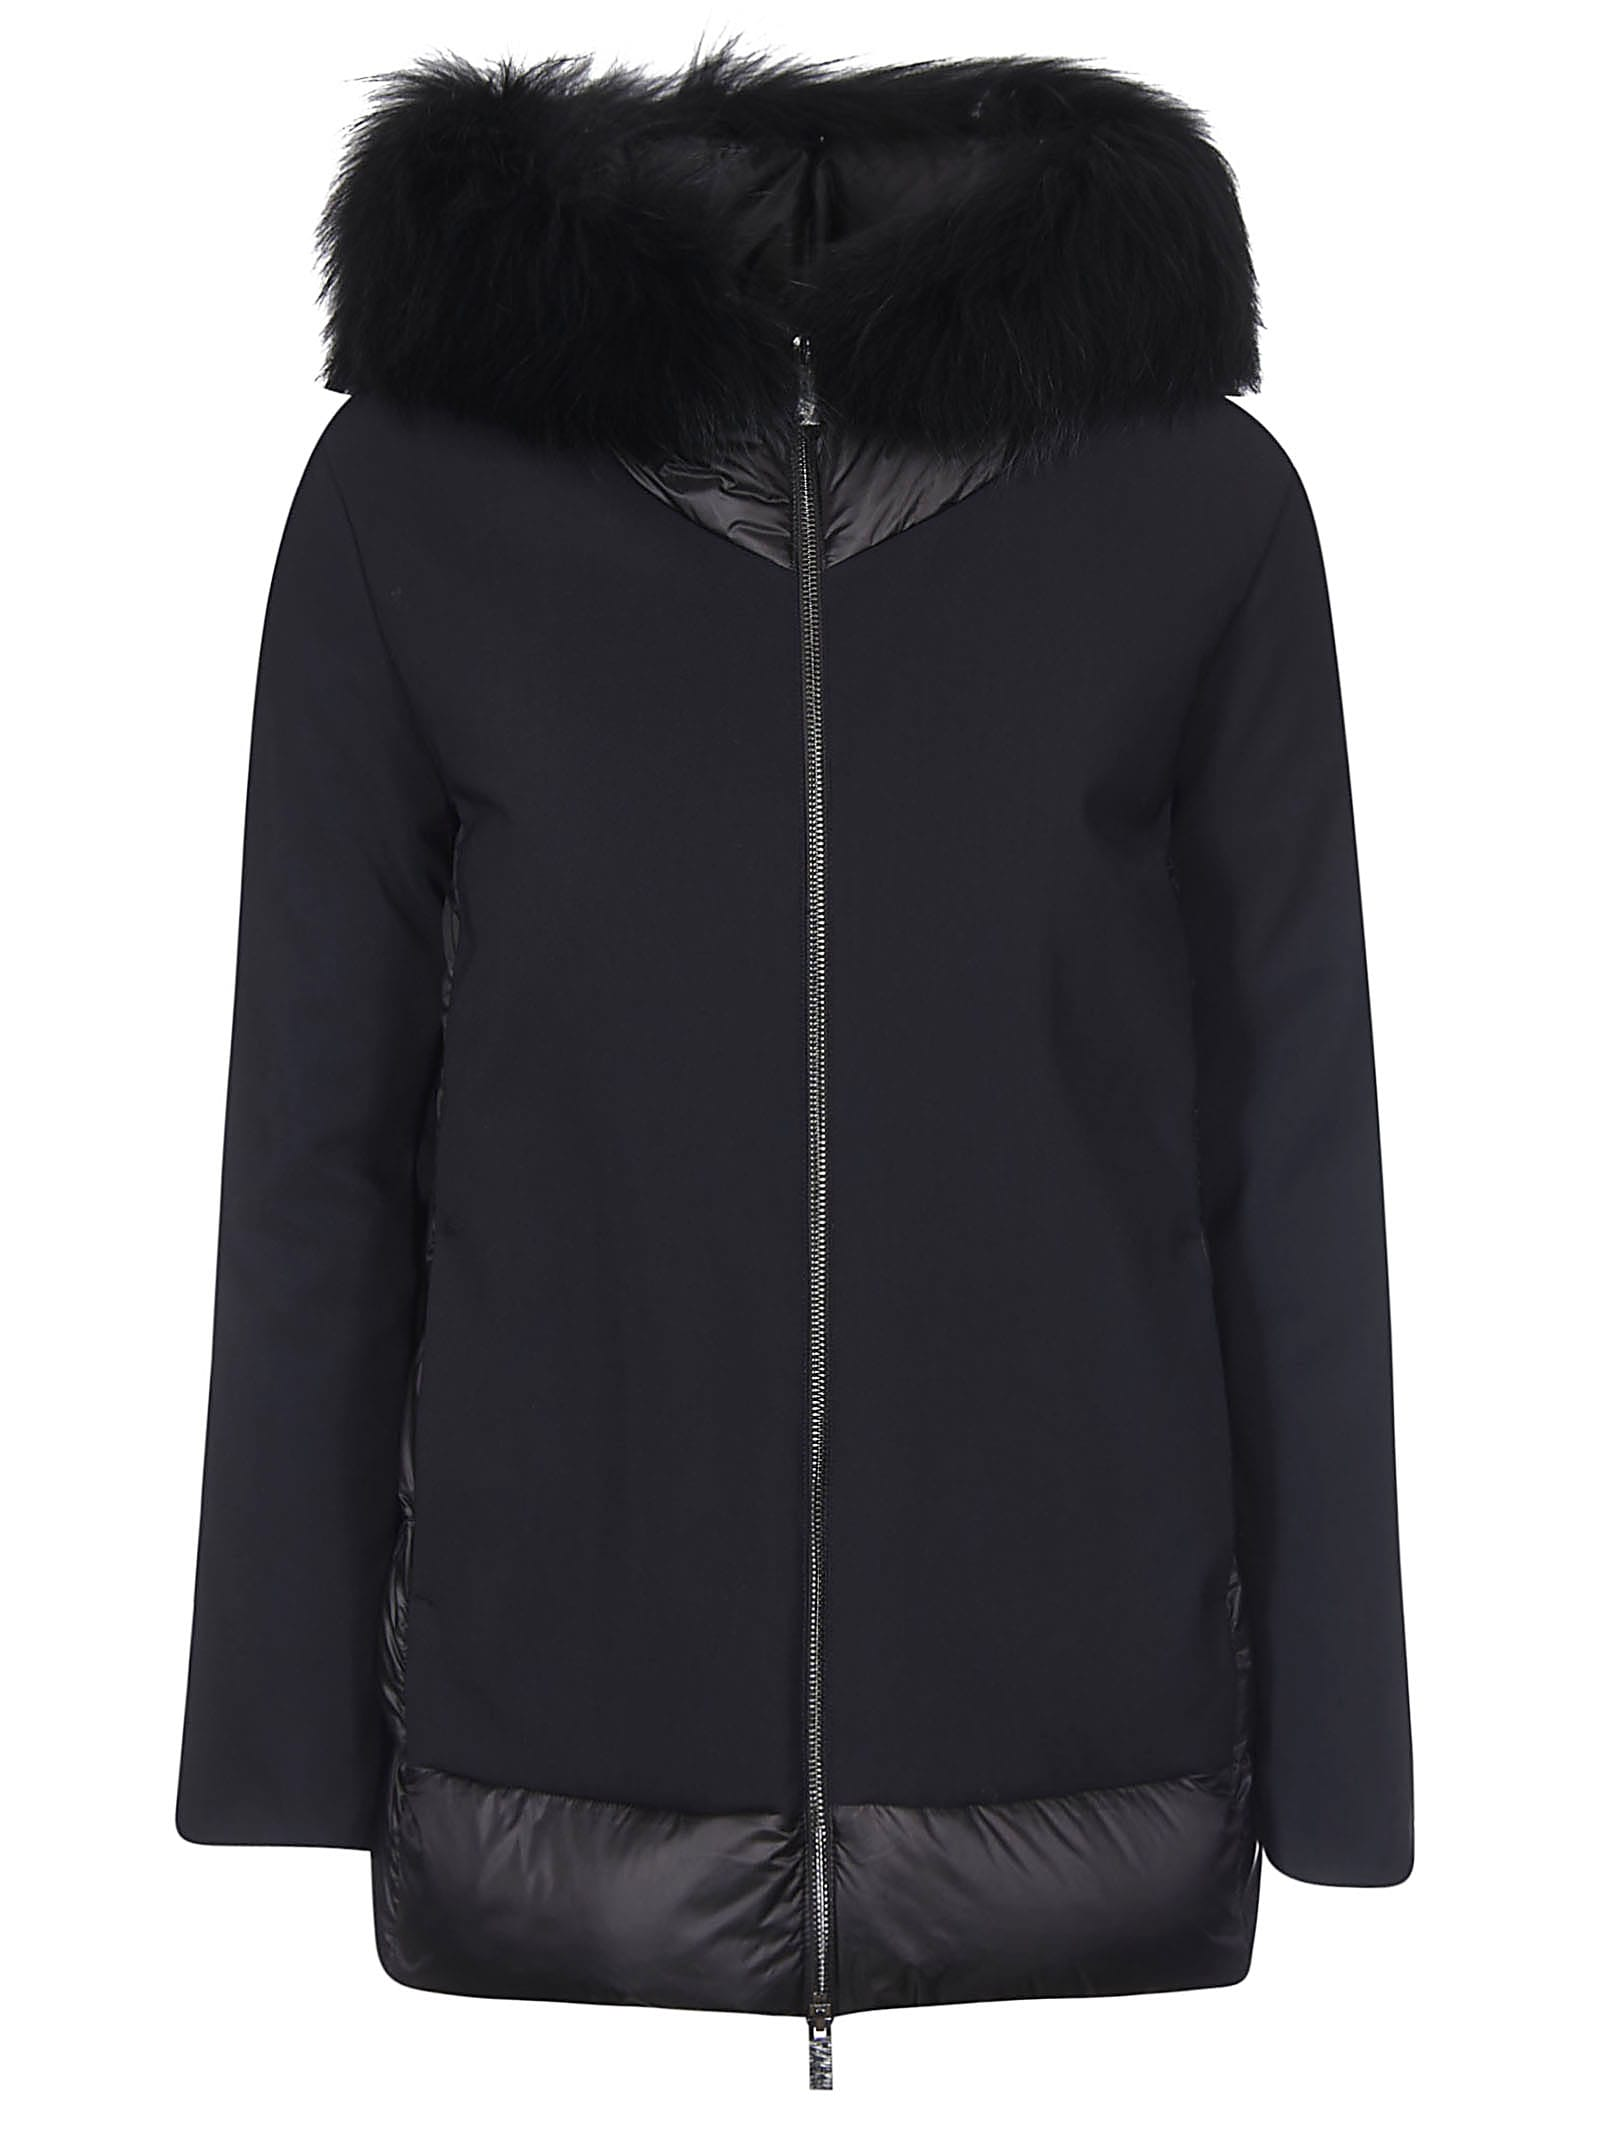 RRD – Roberto Ricci Design Back Padded Detail Furred Hood Jacket